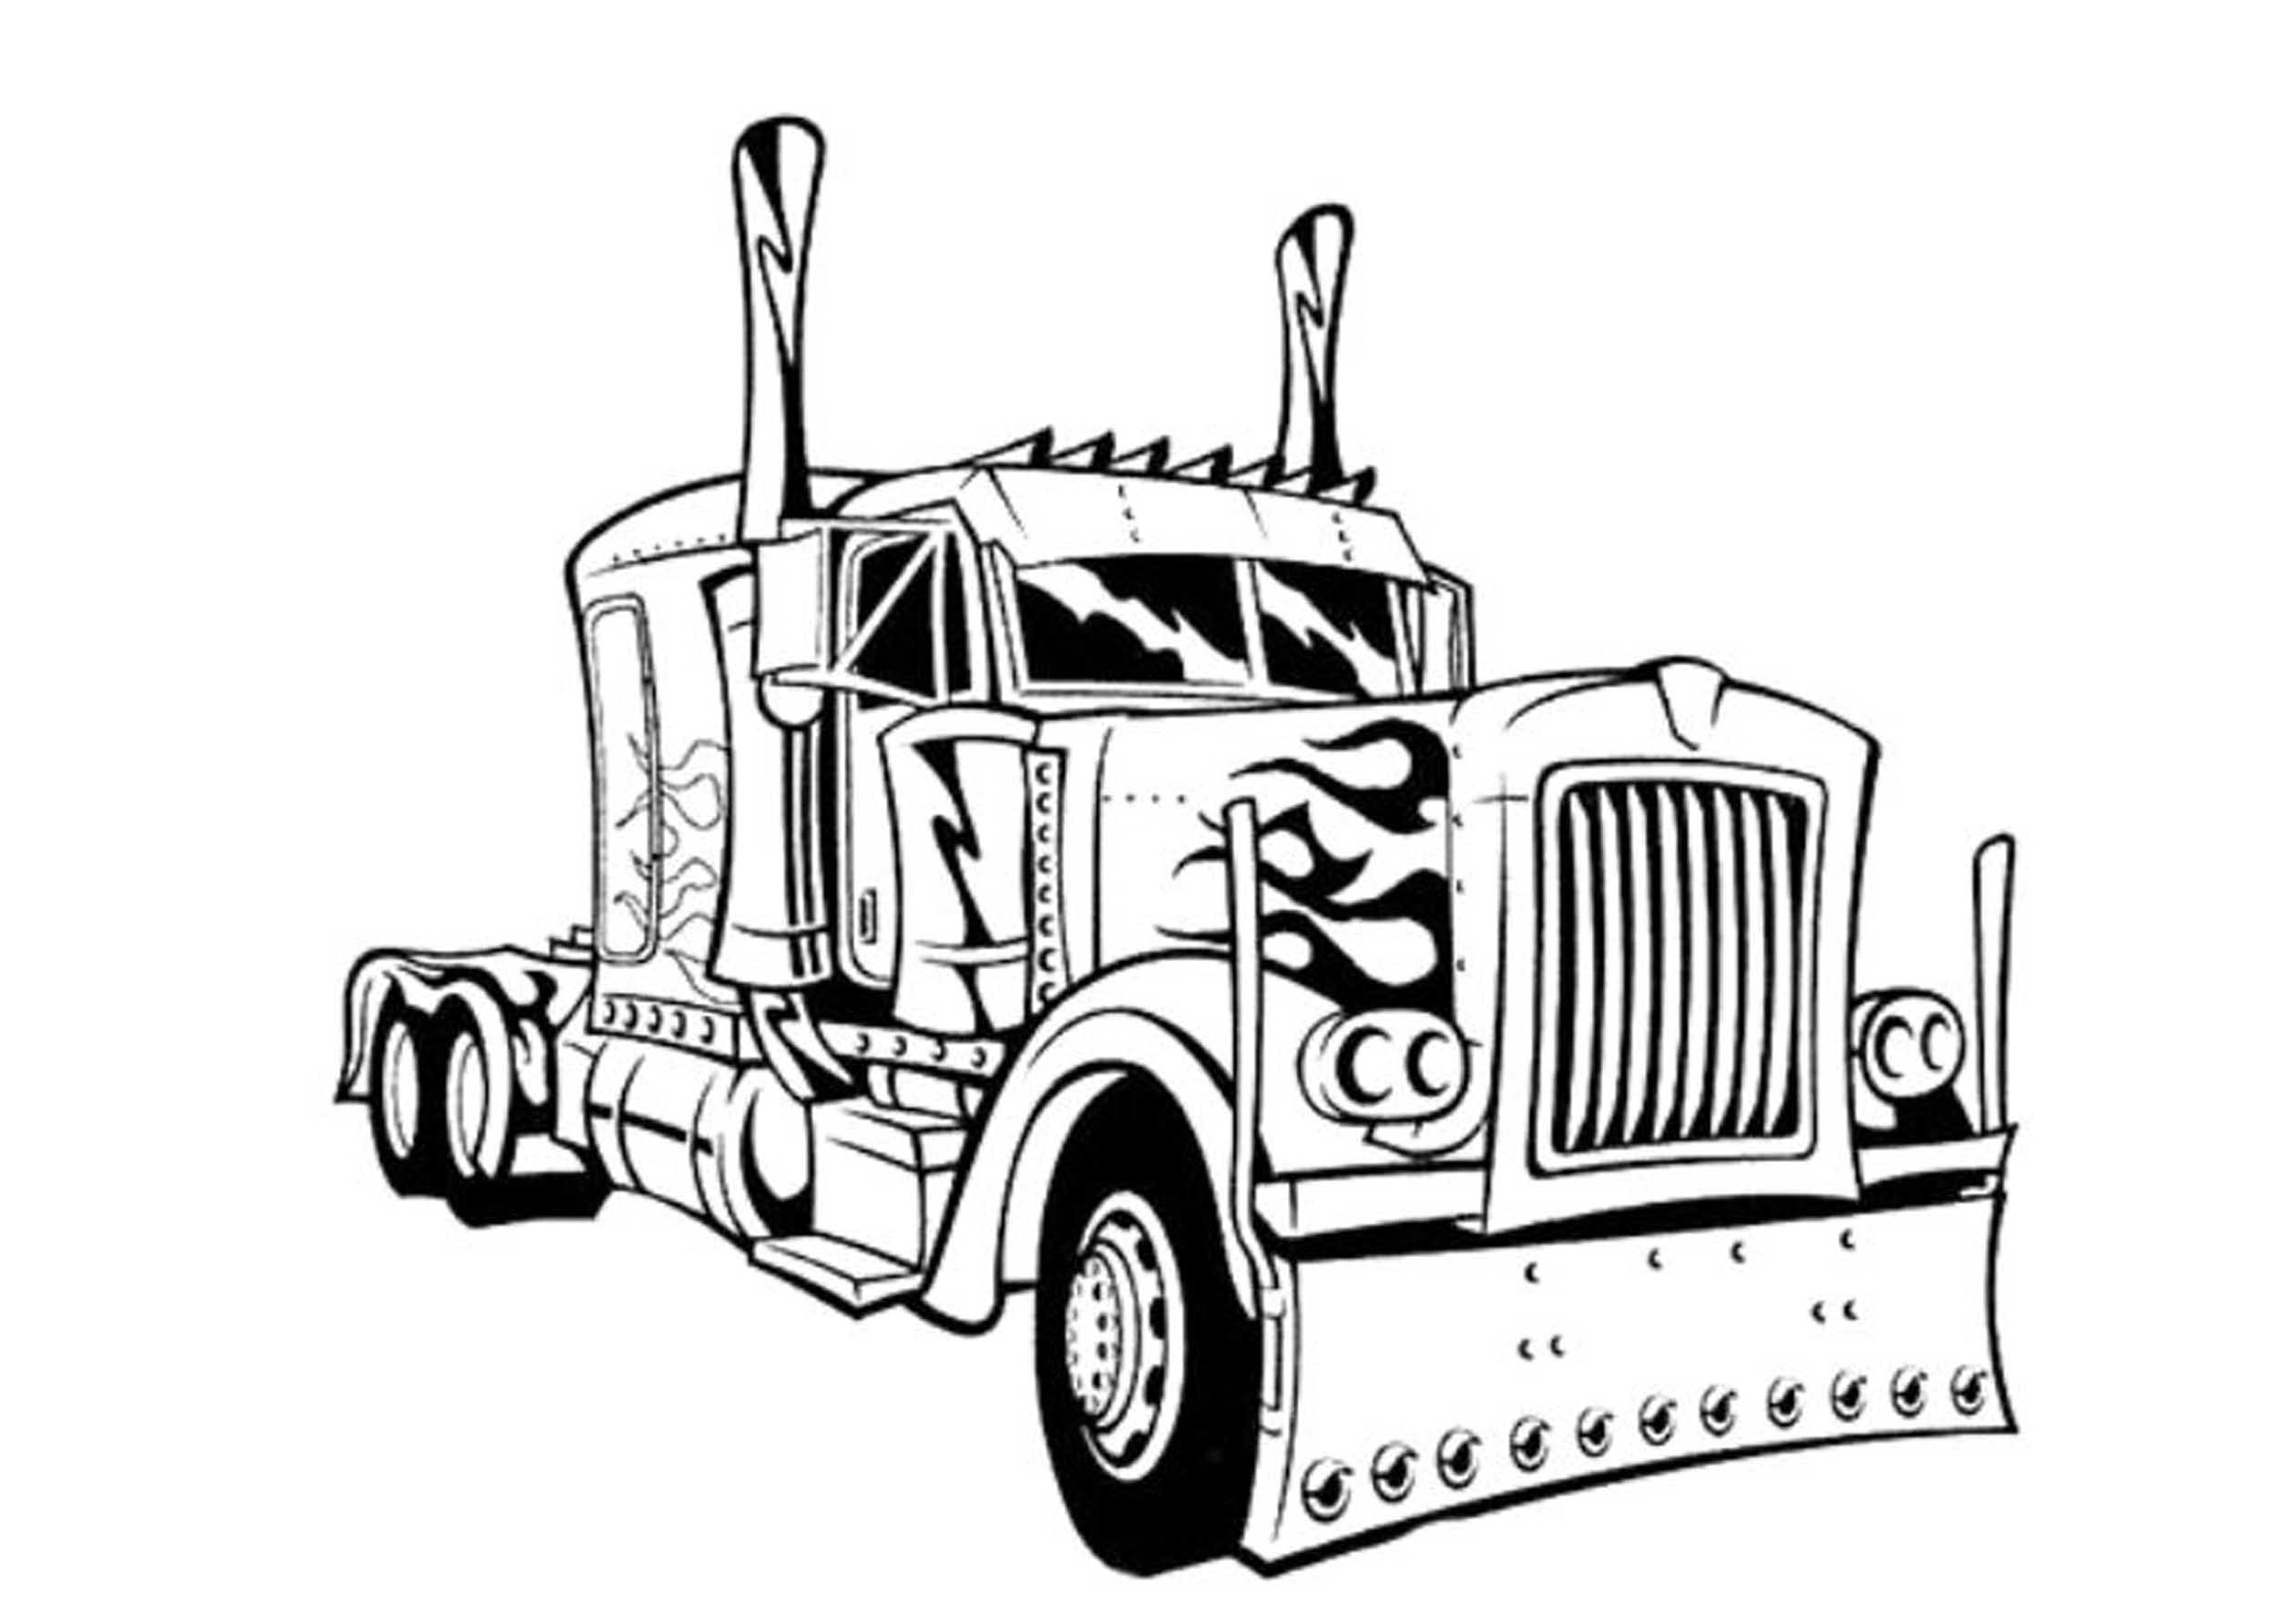 colouring in trucks truck outline drawing at getdrawings free download trucks colouring in